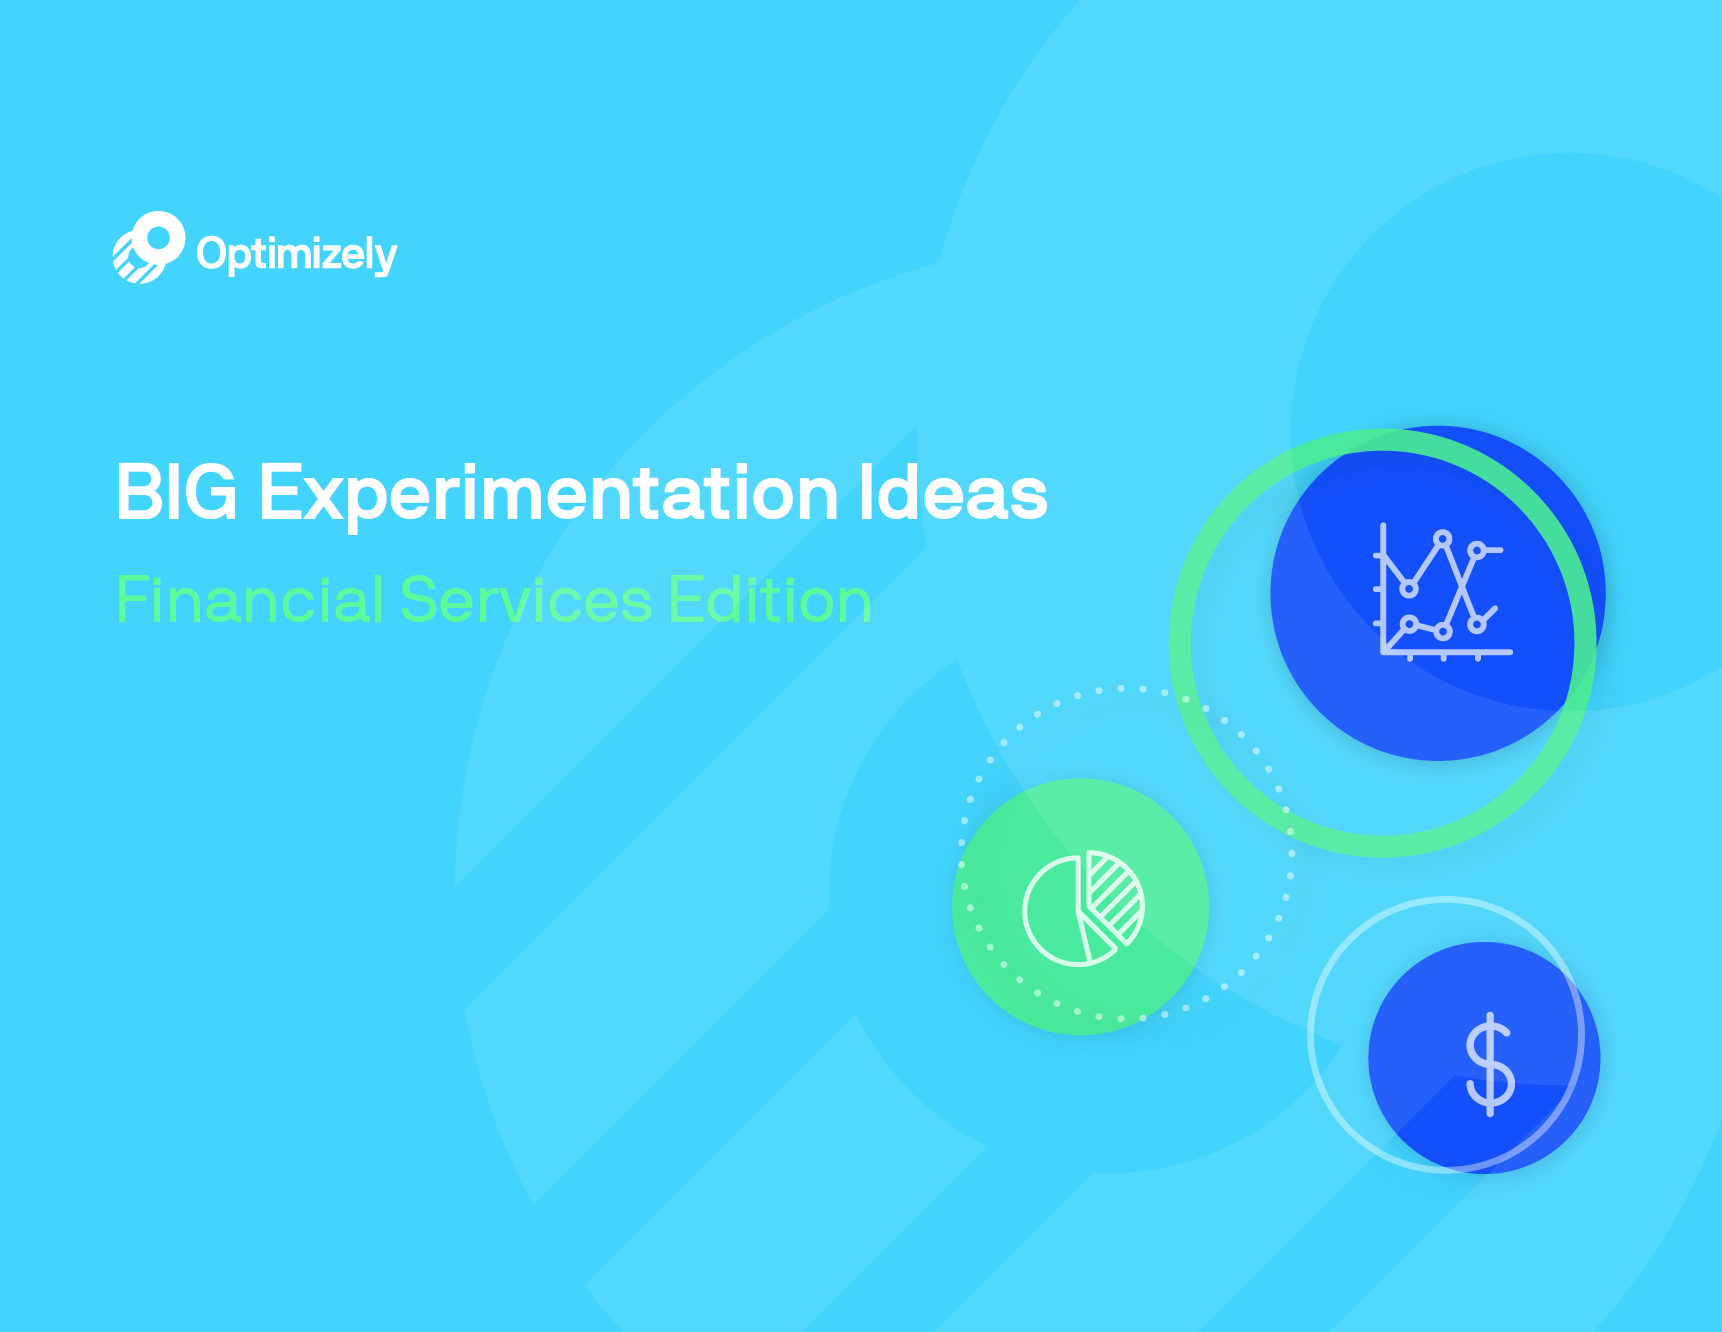 Big Experimentation Ideas: Financial Services Edition